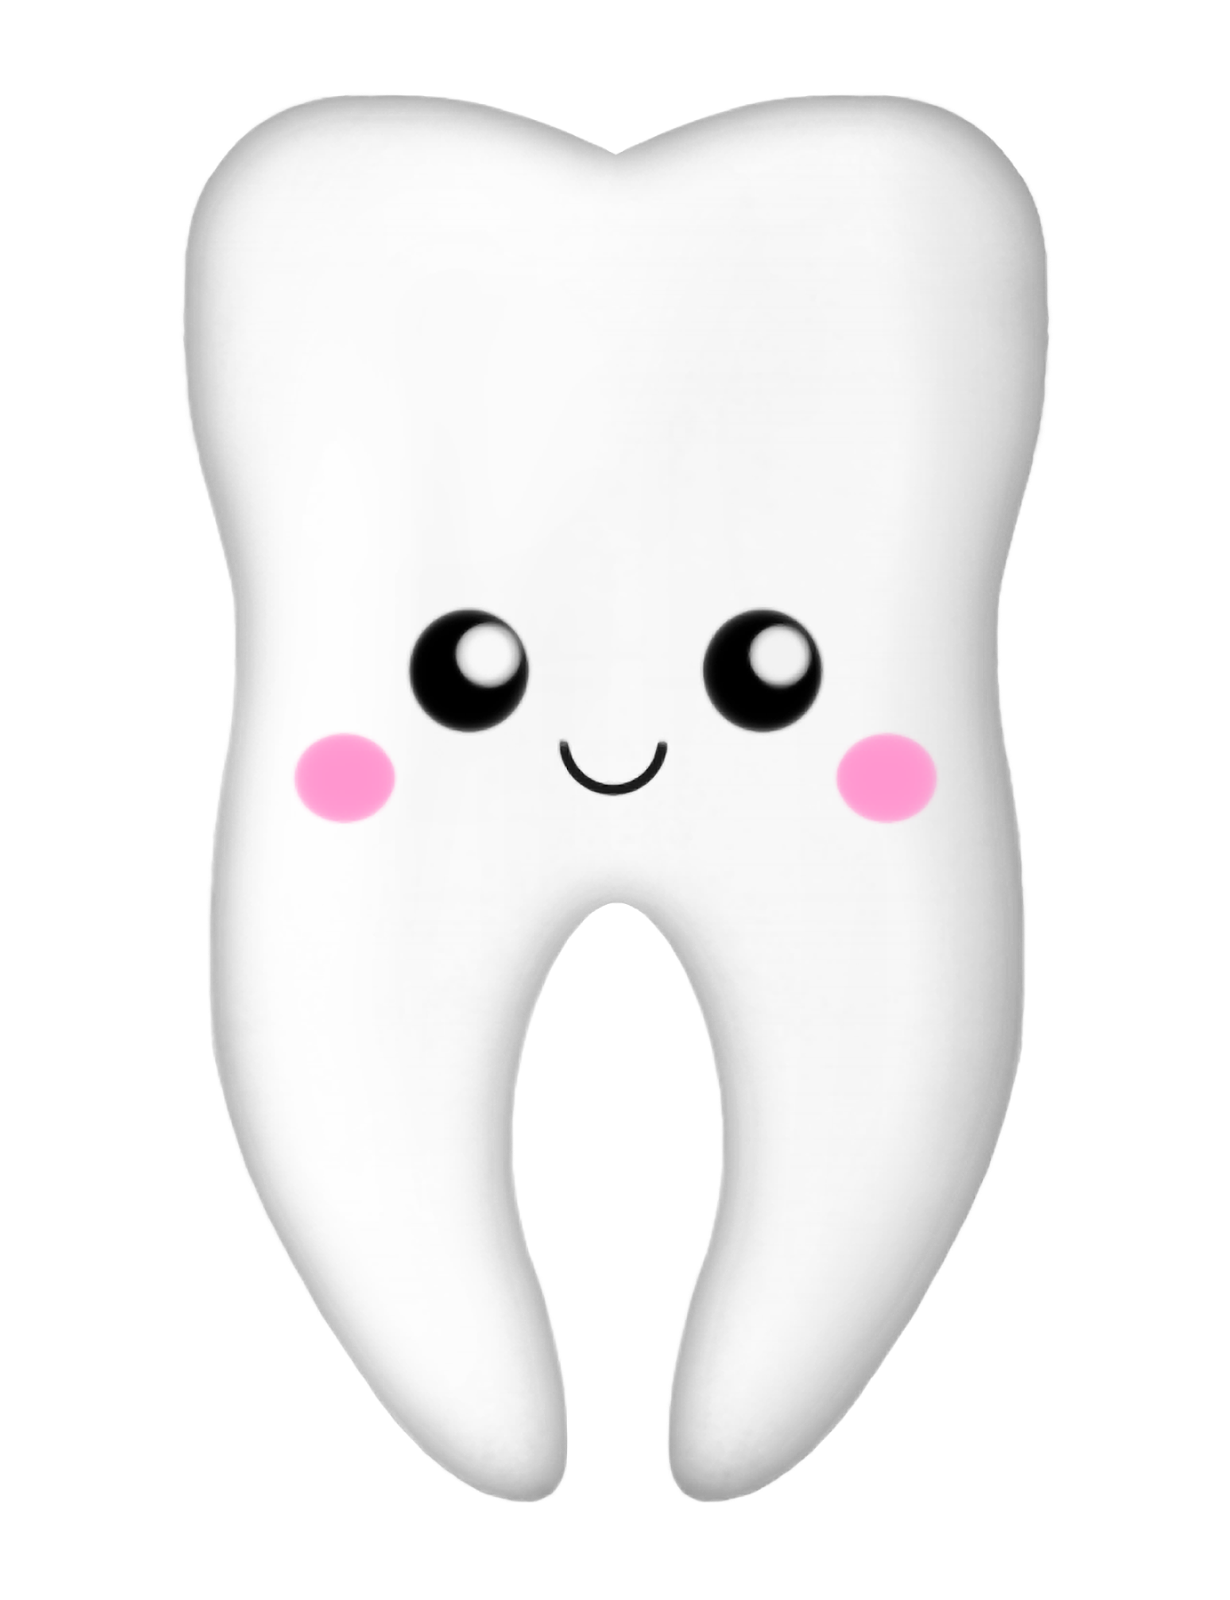 Tooth clipart template image library Pin by Elizabeth Schimke on Crafts | Tooth clipart, Teeth ... image library